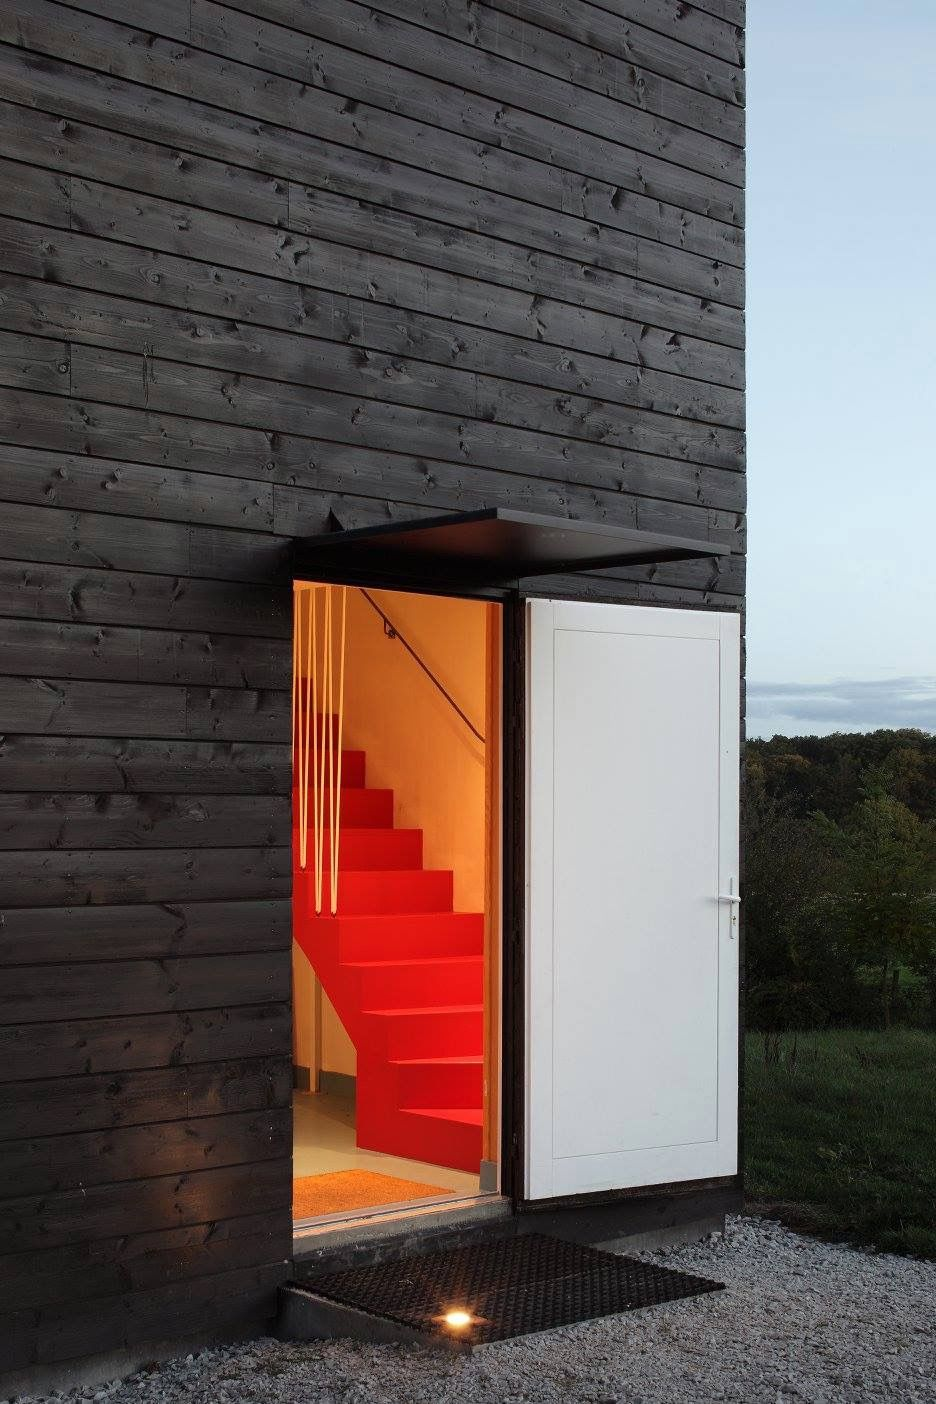 House in Normandy by Beckmann N'thepe architects